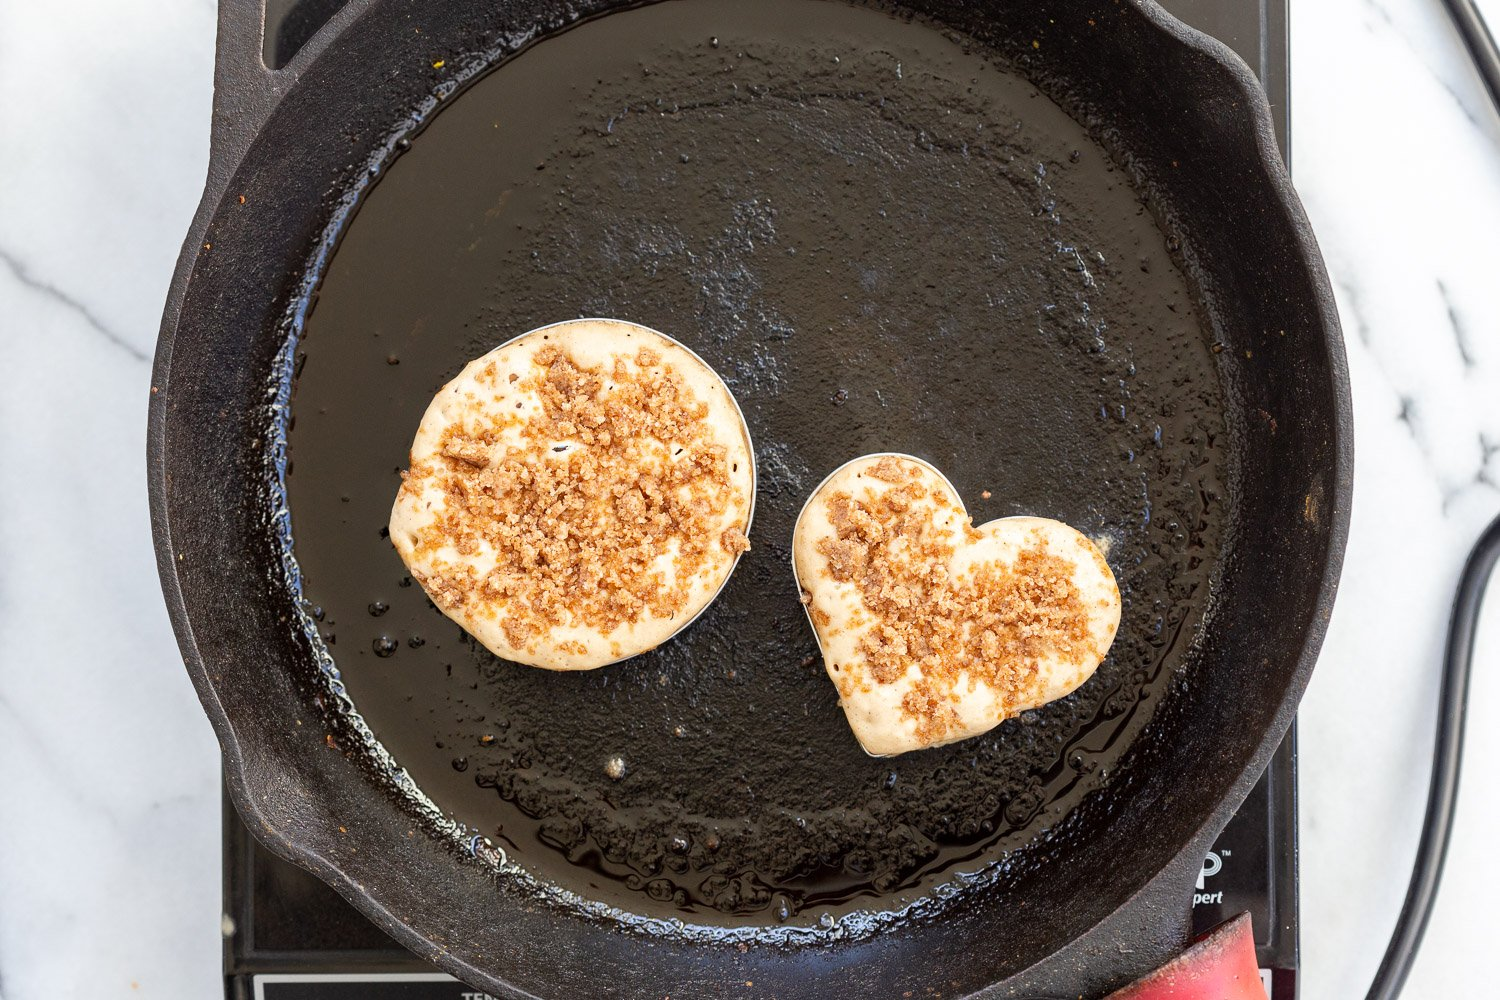 Vegan Cinnamon Streusel Pancakes getting cooked on a cast iron skillet